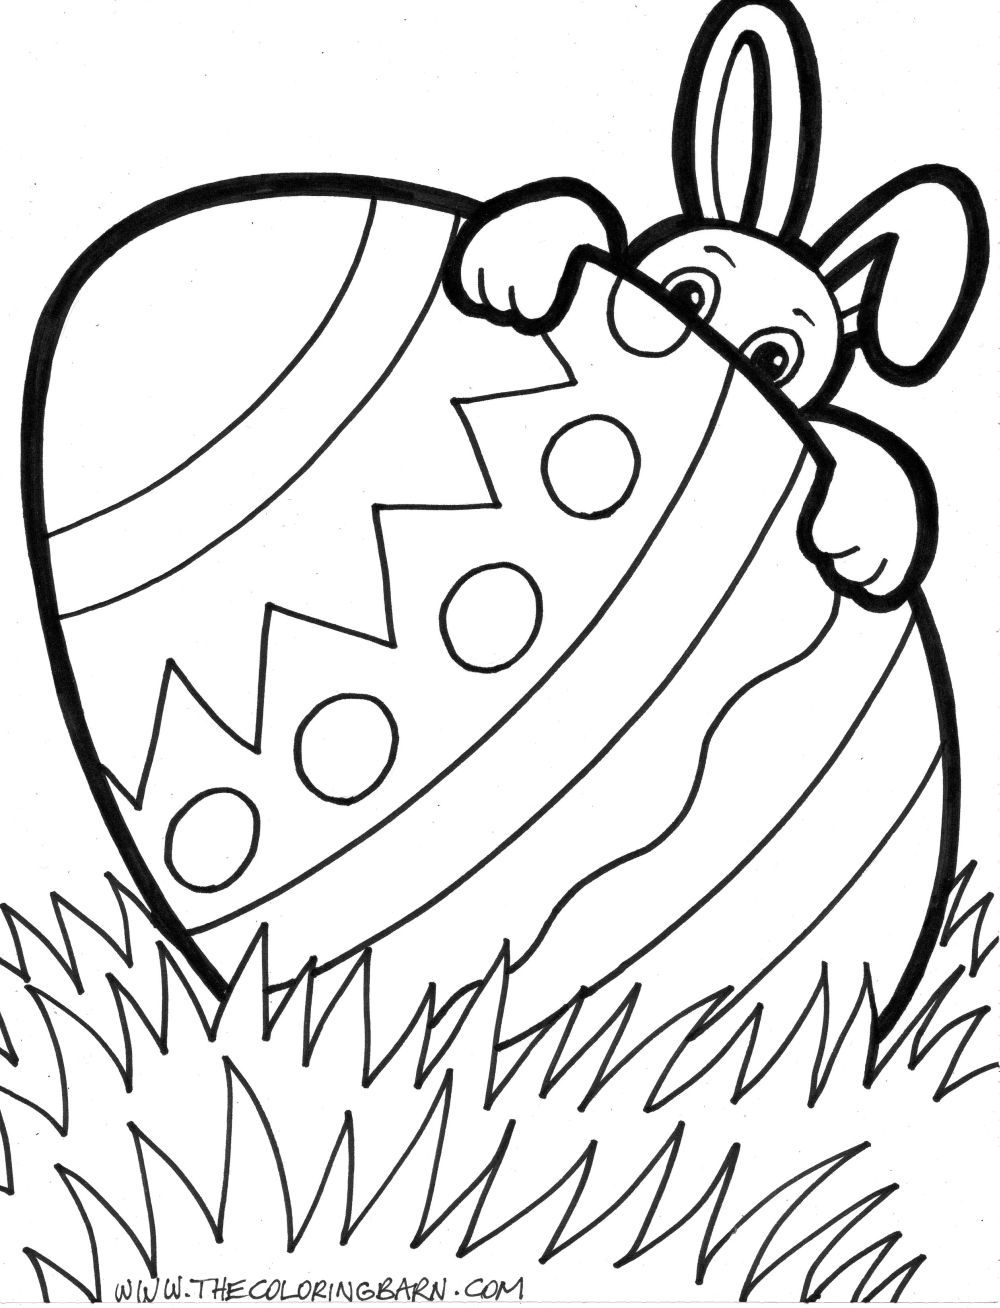 I Spy Alphabet Colouring Pages Alphabet Printables Alphabet